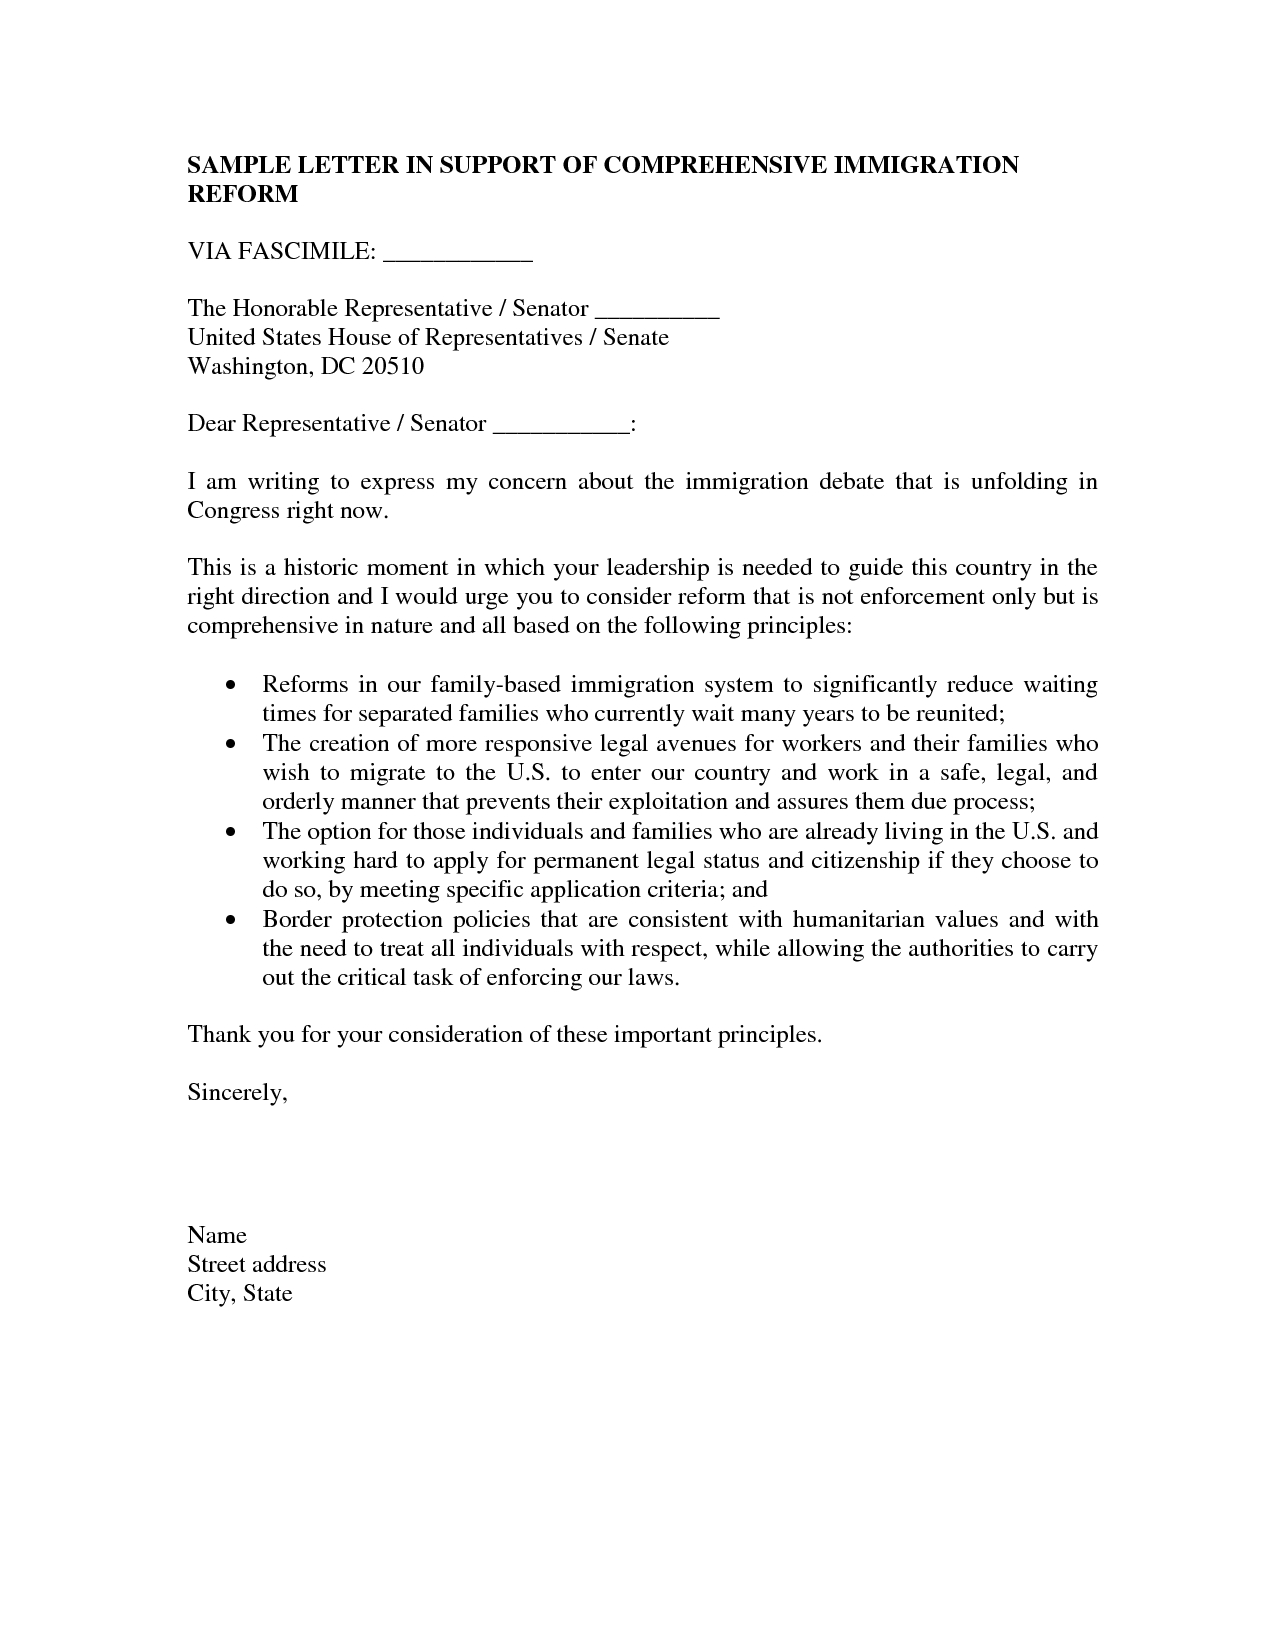 Child Support Modification Letter Template - How to Write A Child Support Letter Image Collections Letter